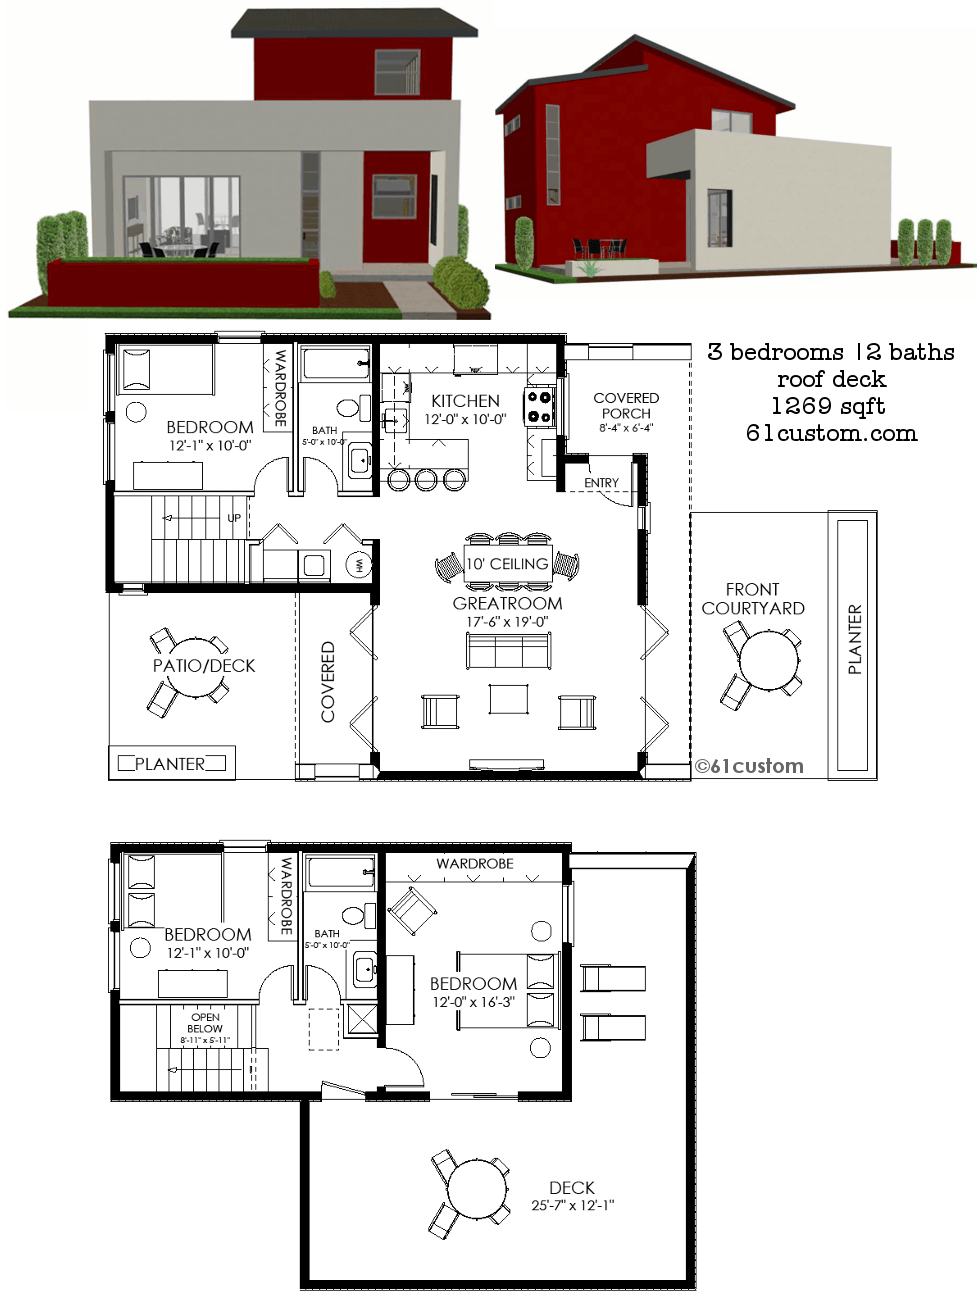 Contemporary small house plan 61custom contemporary Home building plans